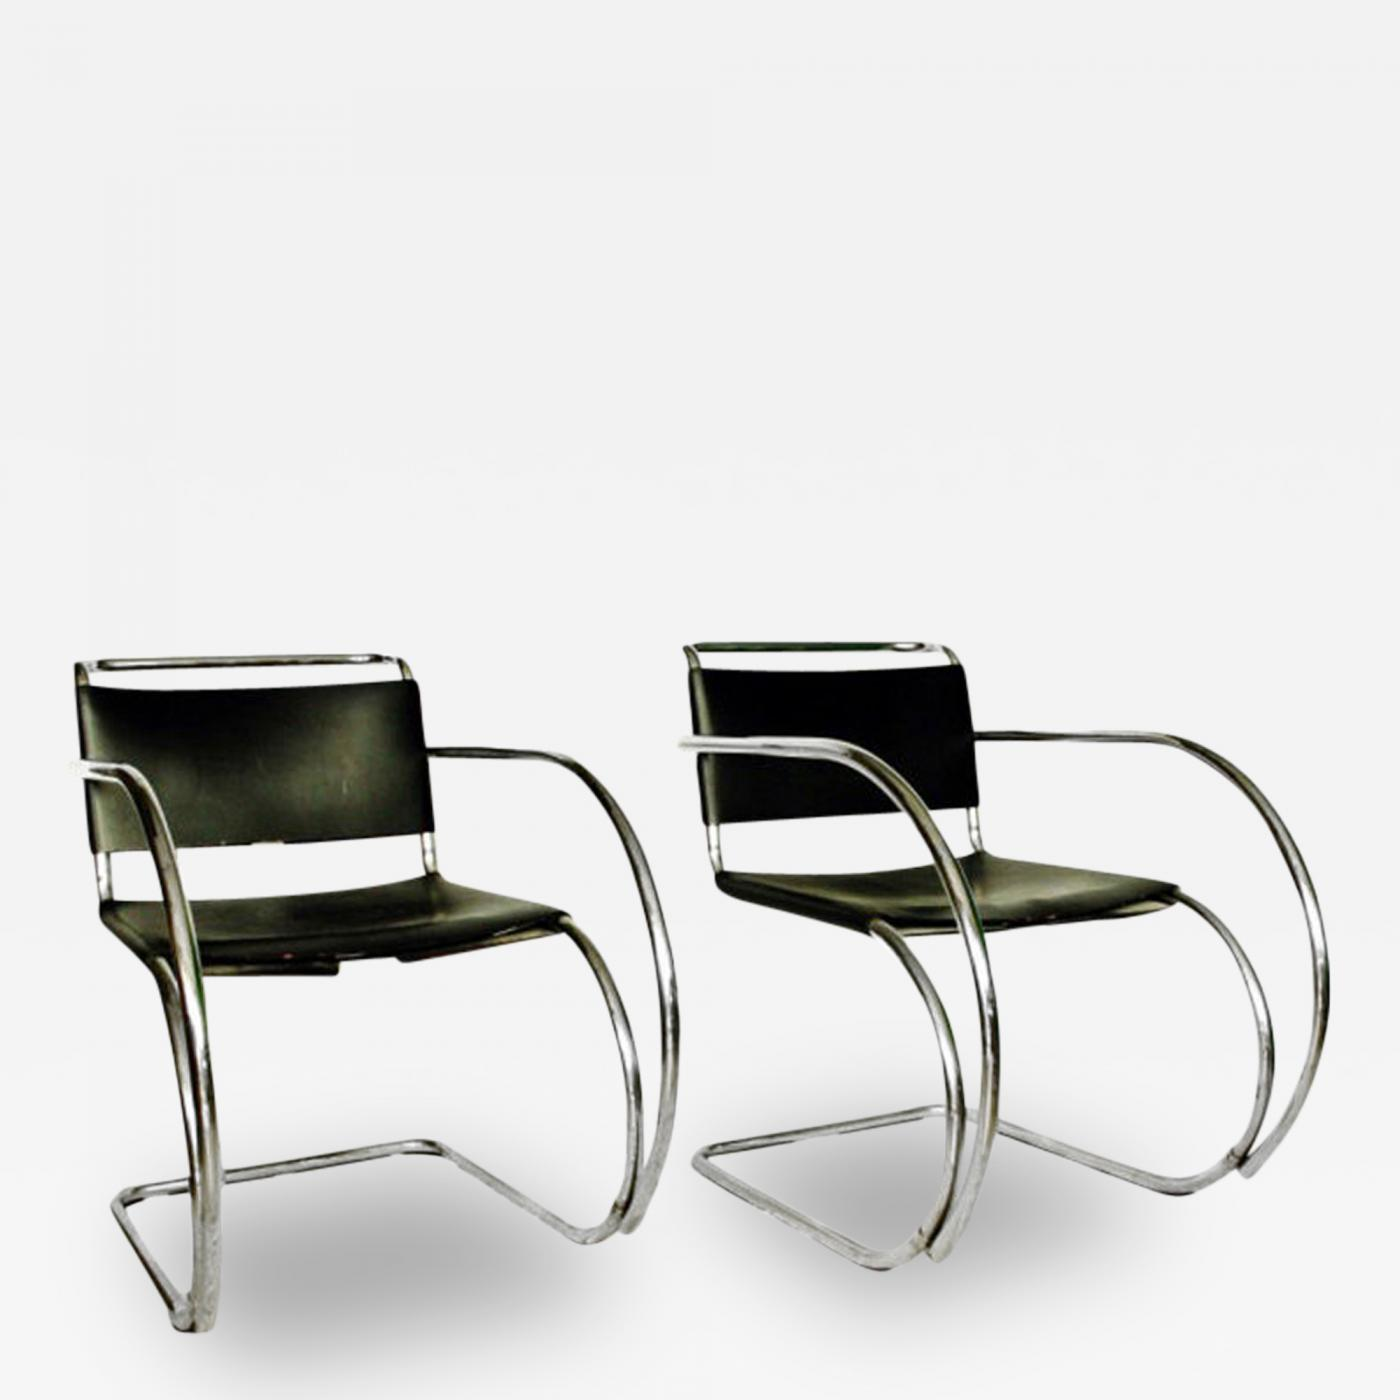 ludwig mies van der rohe pair of mr 20 lounge chairs mies van der rohe. Black Bedroom Furniture Sets. Home Design Ideas